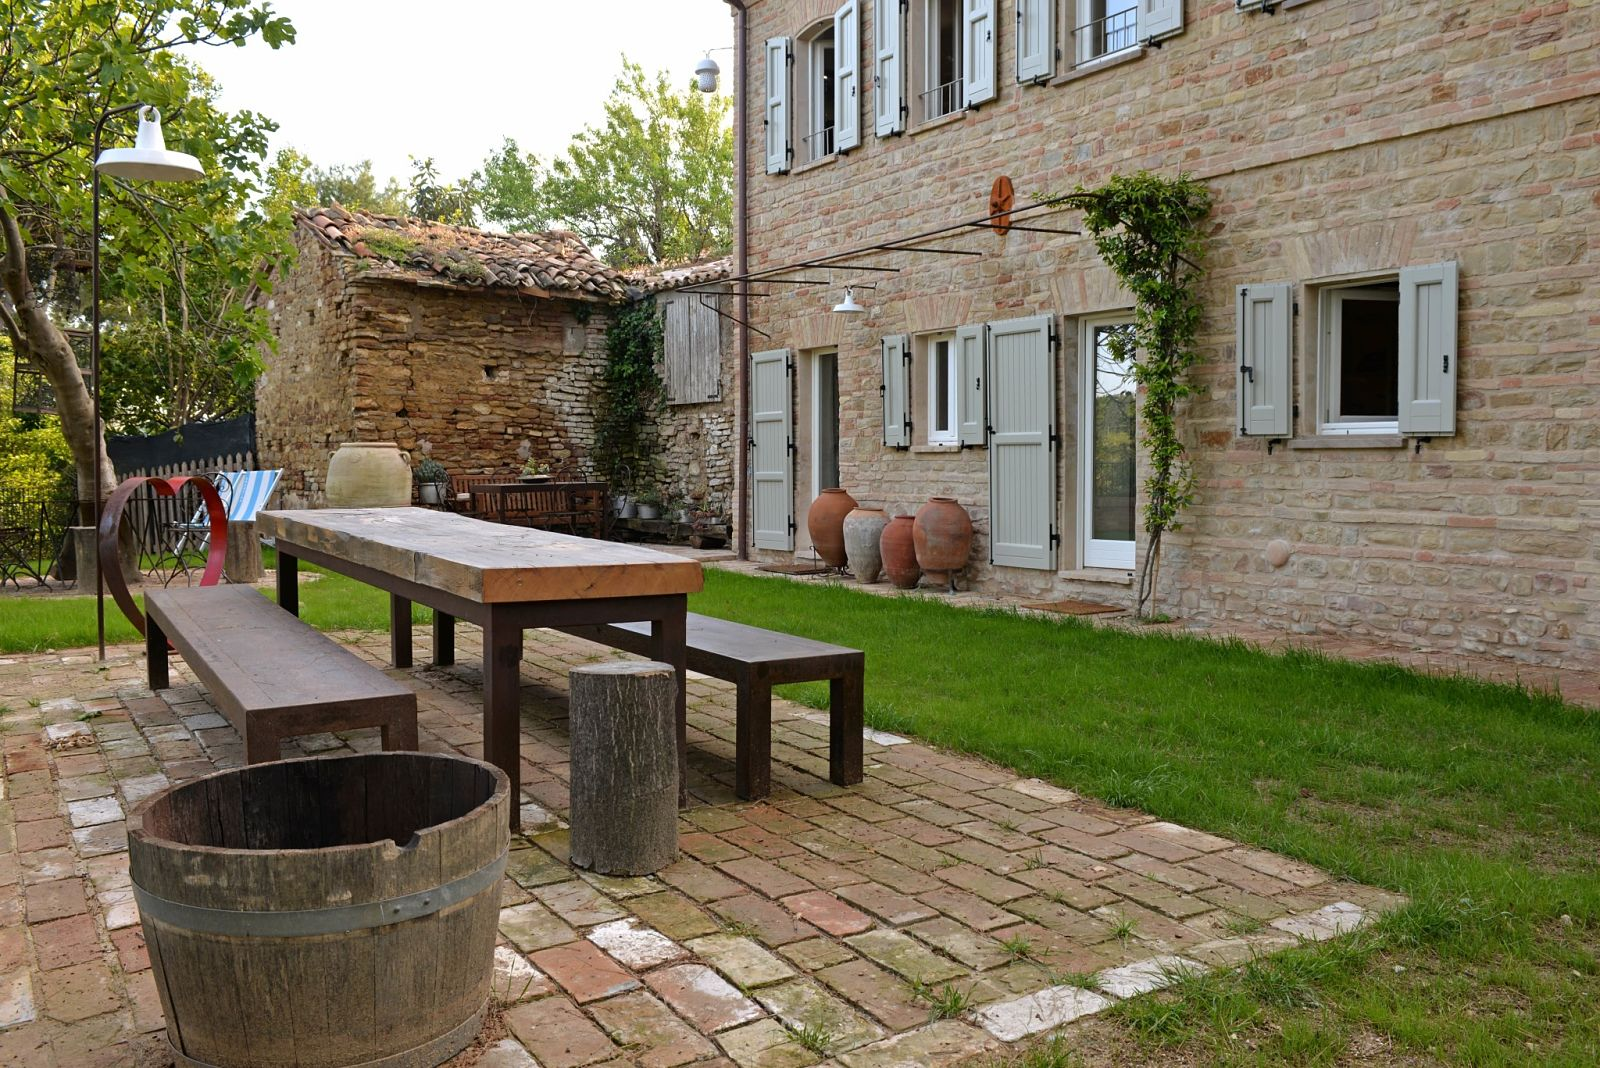 castello di granarola country house apartments in gradara in marche